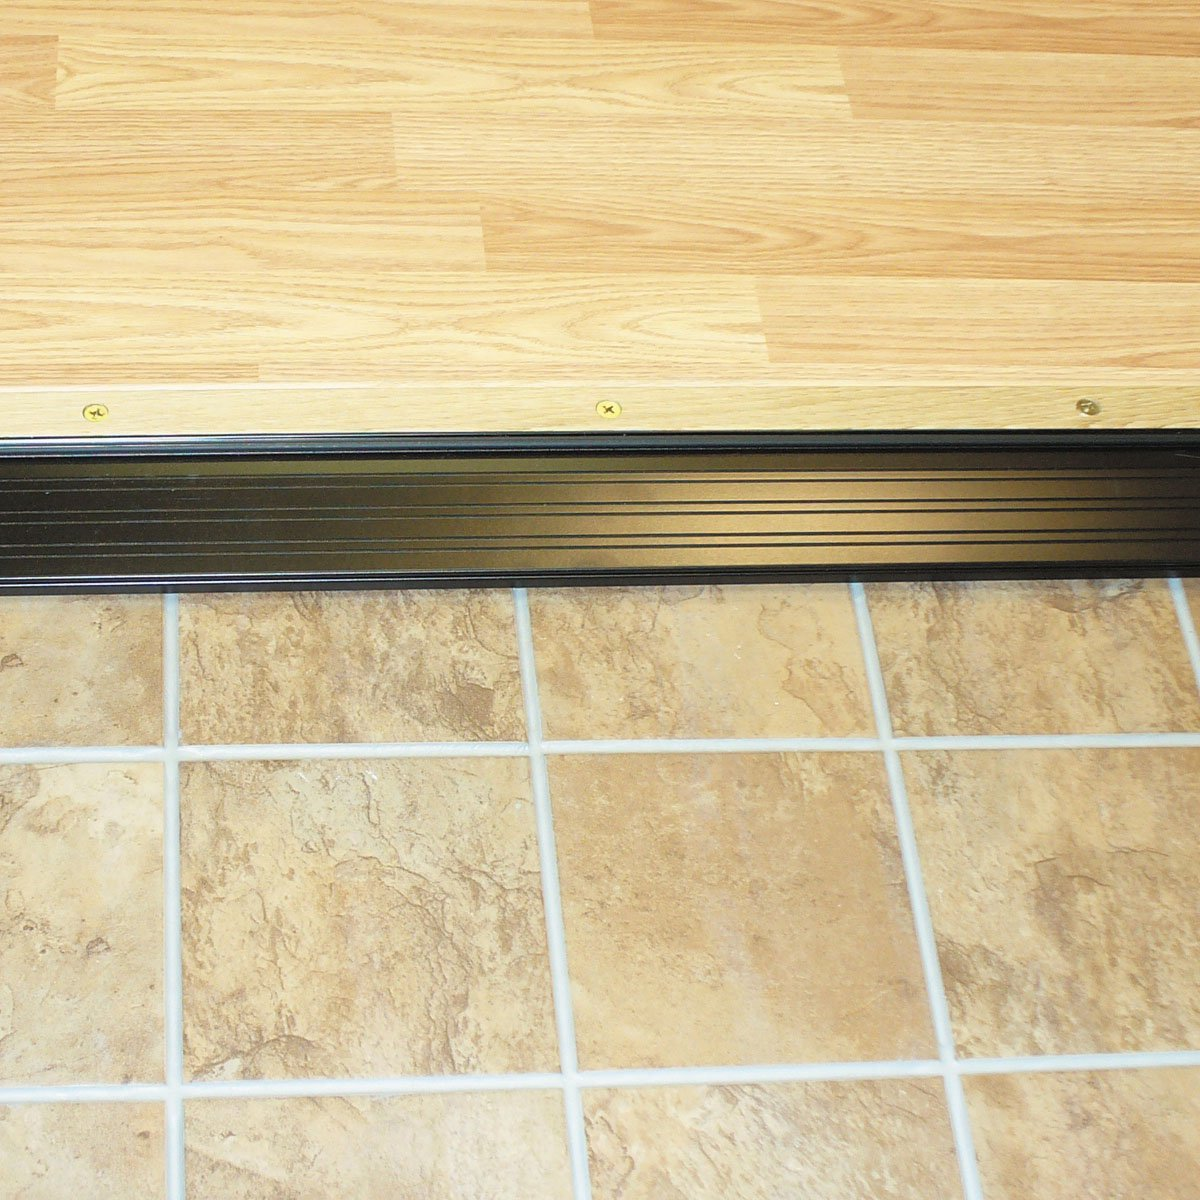 M-D Building Products 77792 1-1/8-Inch by 4-9/16-Inch - 36-Inch TH393 Adjustable Aluminum and Hardwood Sill Inswing, Bronze